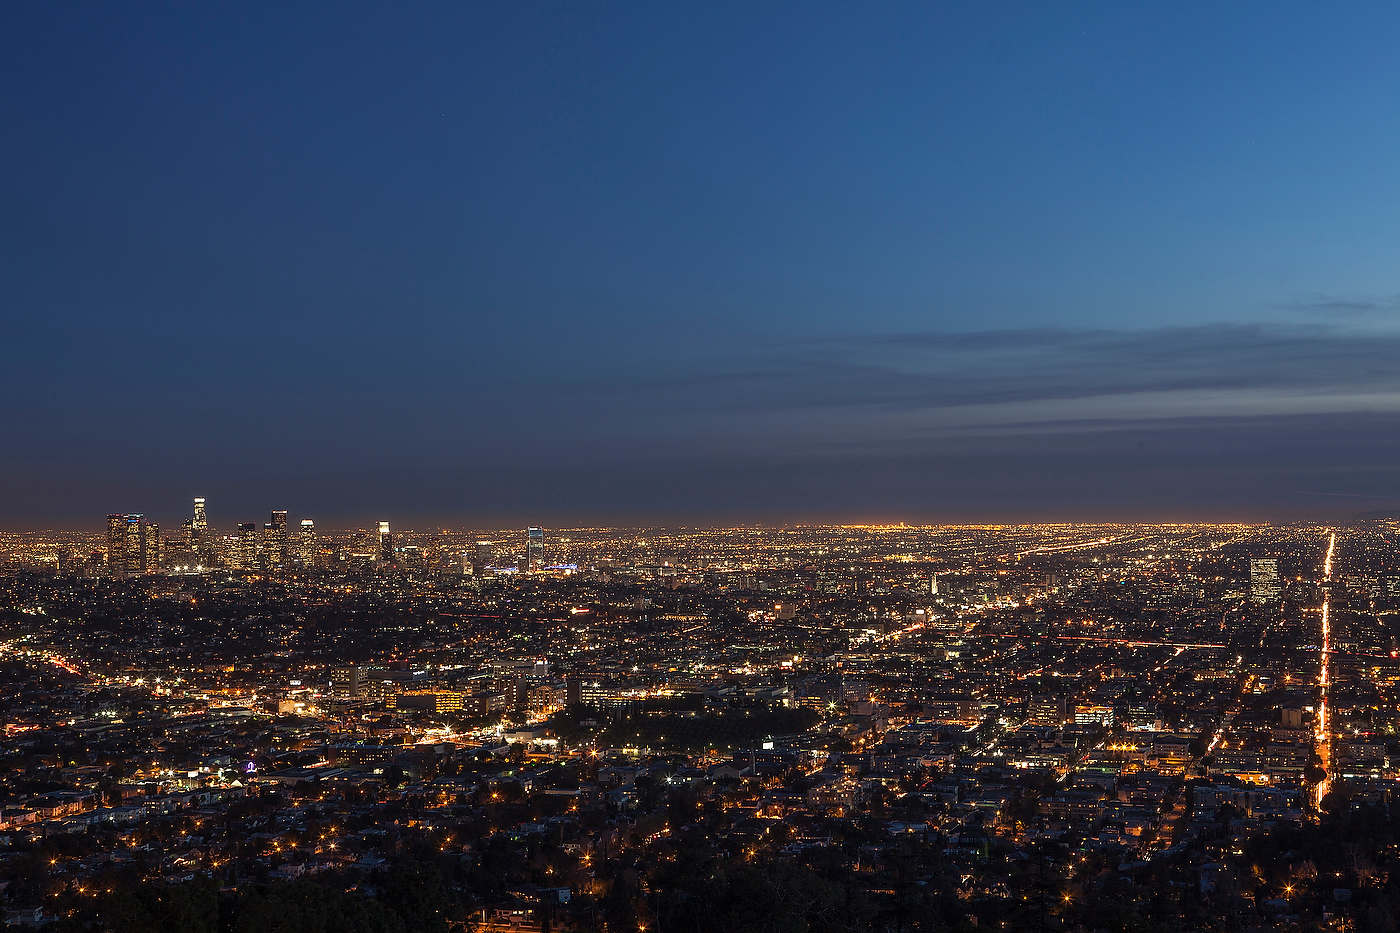 Los Angeles at dusk.